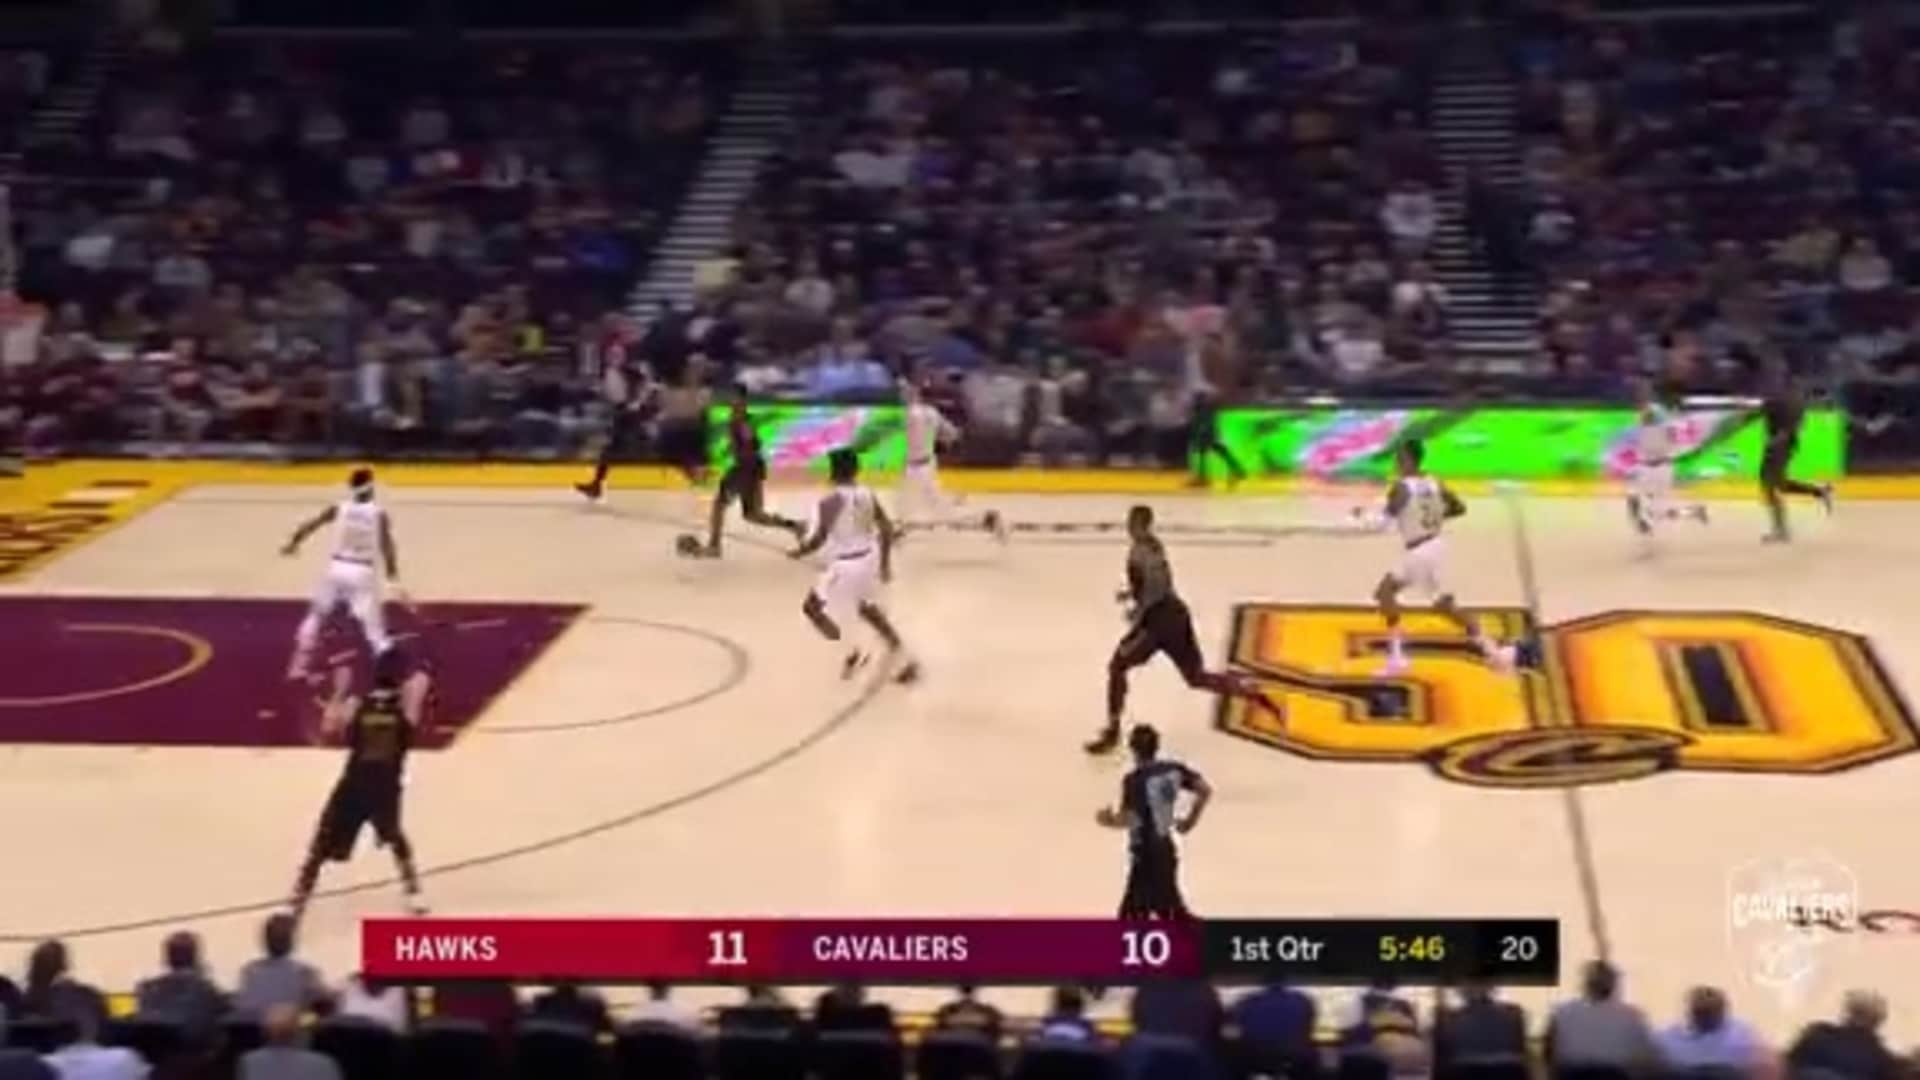 TT Runs the Floor, Finishes Play with a Dunk